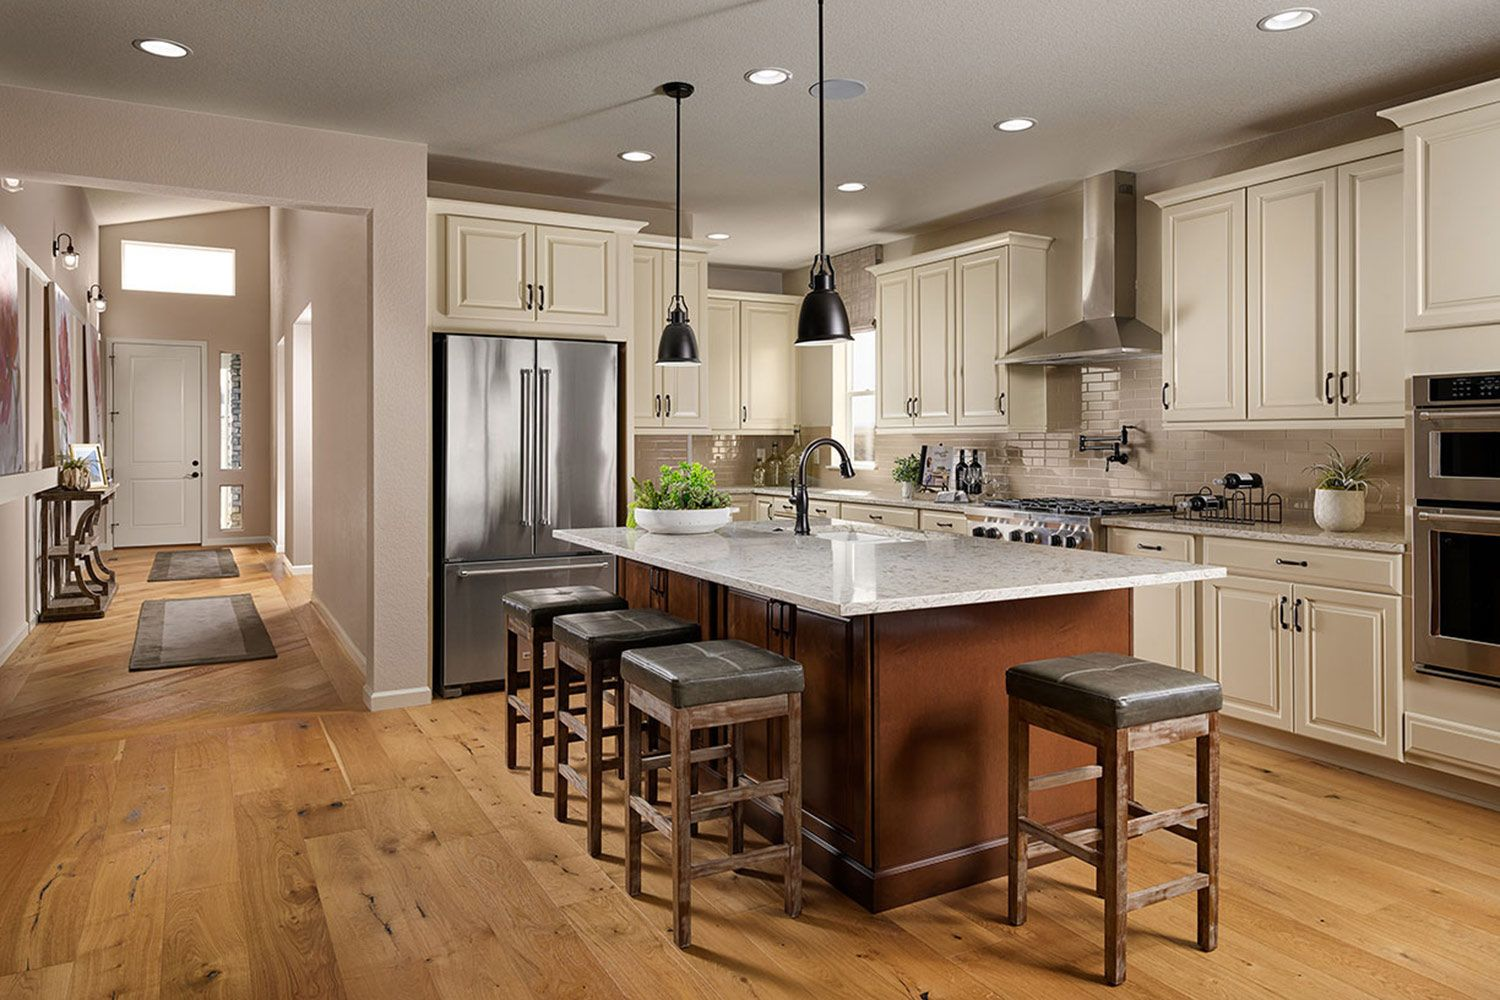 Kitchen-in-Residence 4022-at-Ensemble Collection at Candelas-in-Arvada